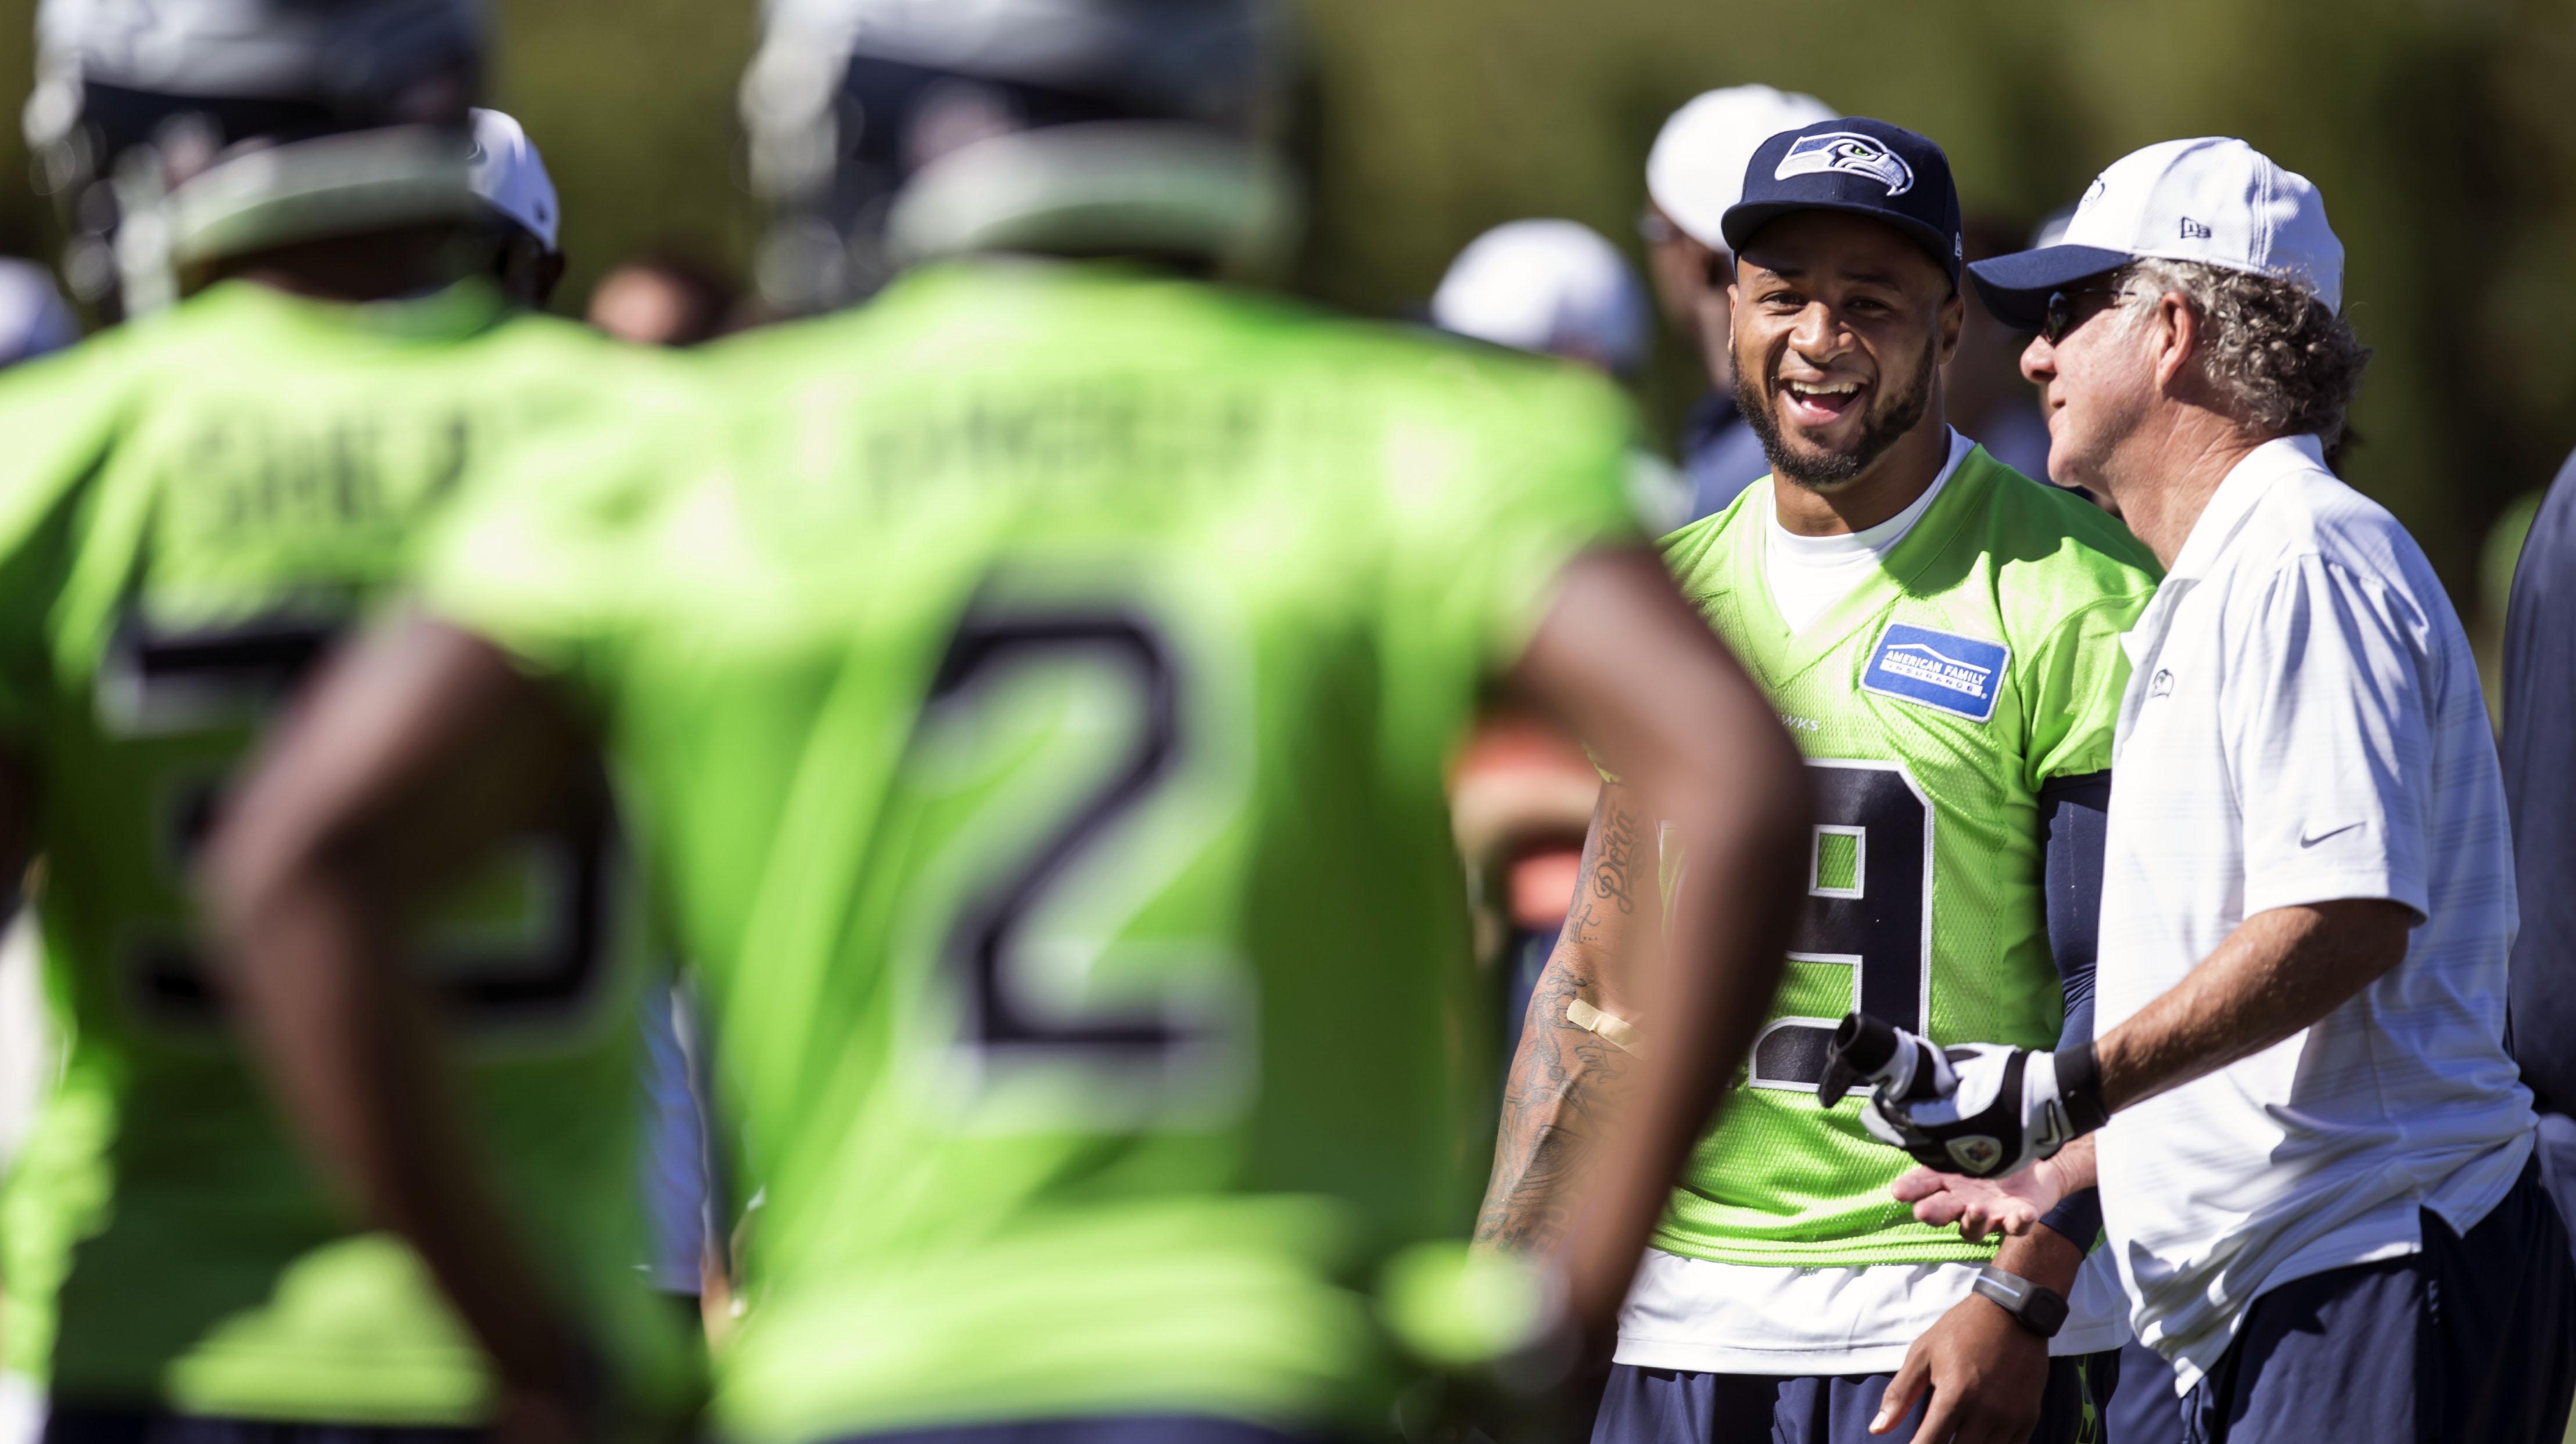 Seattle Seahawks quarterbacks coach  Carl Smith, right, talks with safety Earl Thomas, second from right, on the sidelines during an NFL football training camp on Friday, July 31, 2015, in Renton, Wash. (AP Photo/Stephen Brashear)